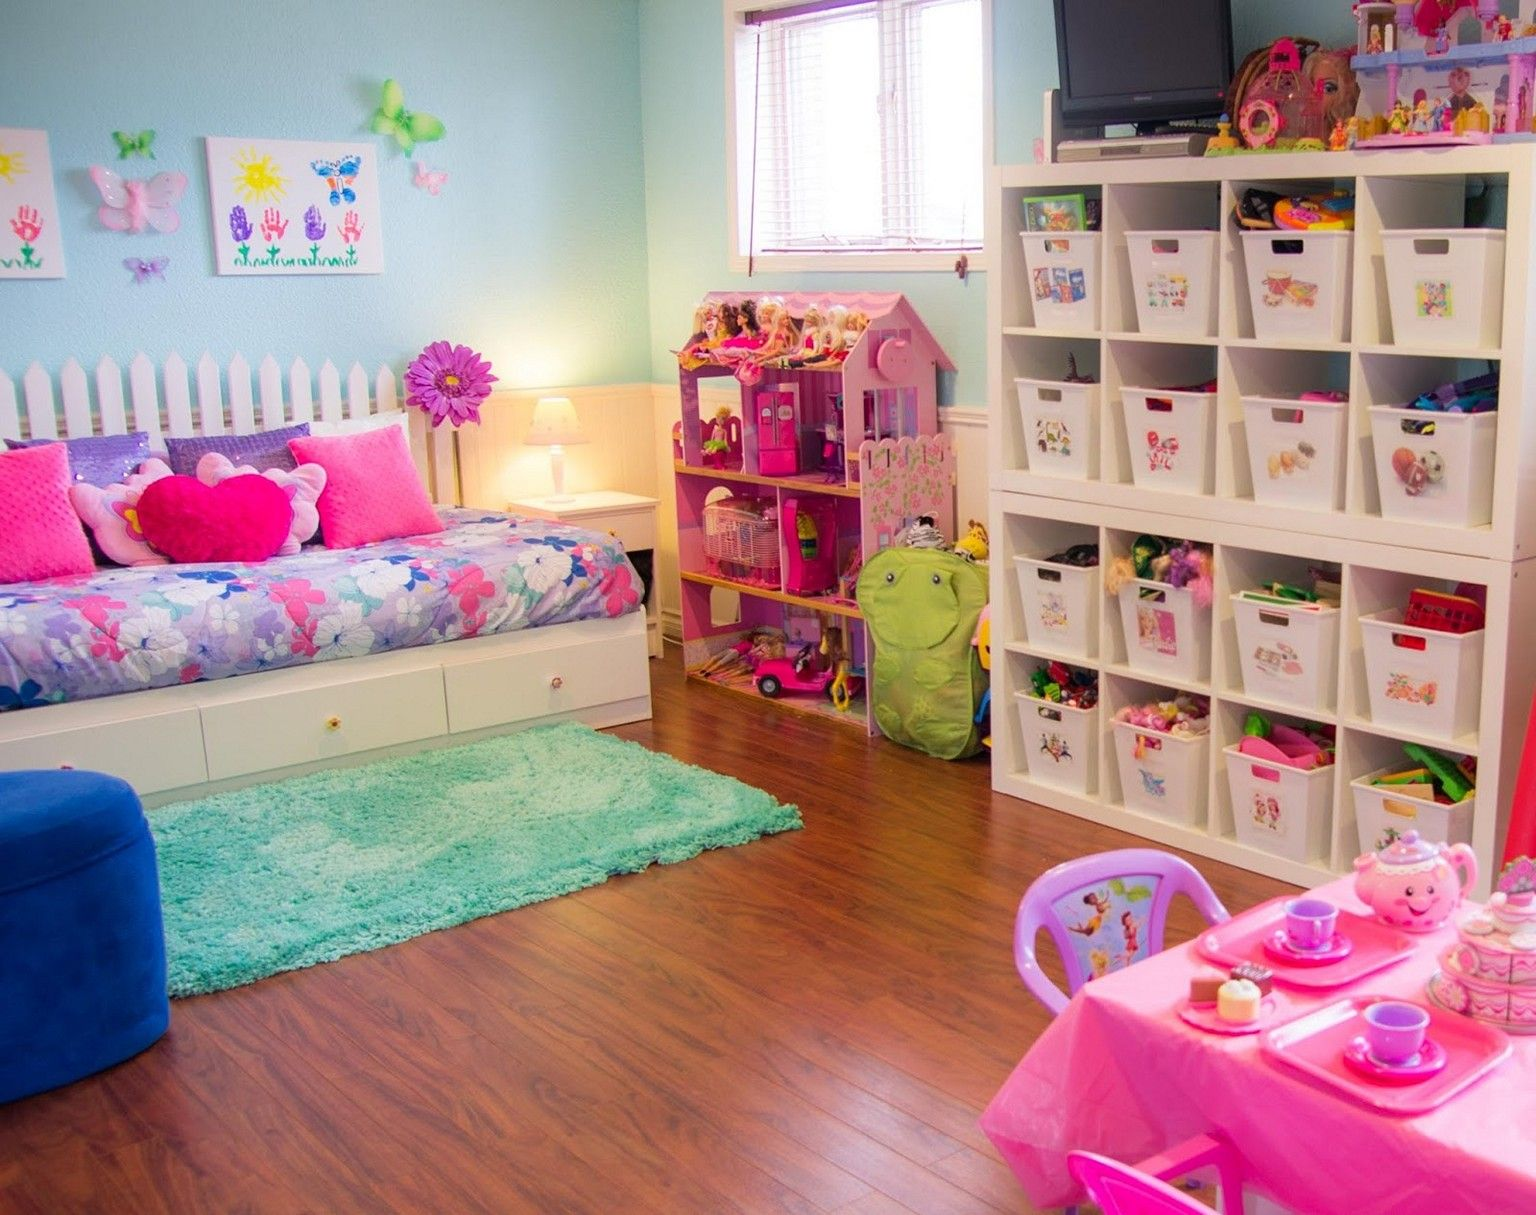 Organizing Kids Playroom: Kids Playroom Organization Teens Room Bedroom  Design How To Organize Kids Best Theme Organizing Ideas Toy Storage For  Small Spaces